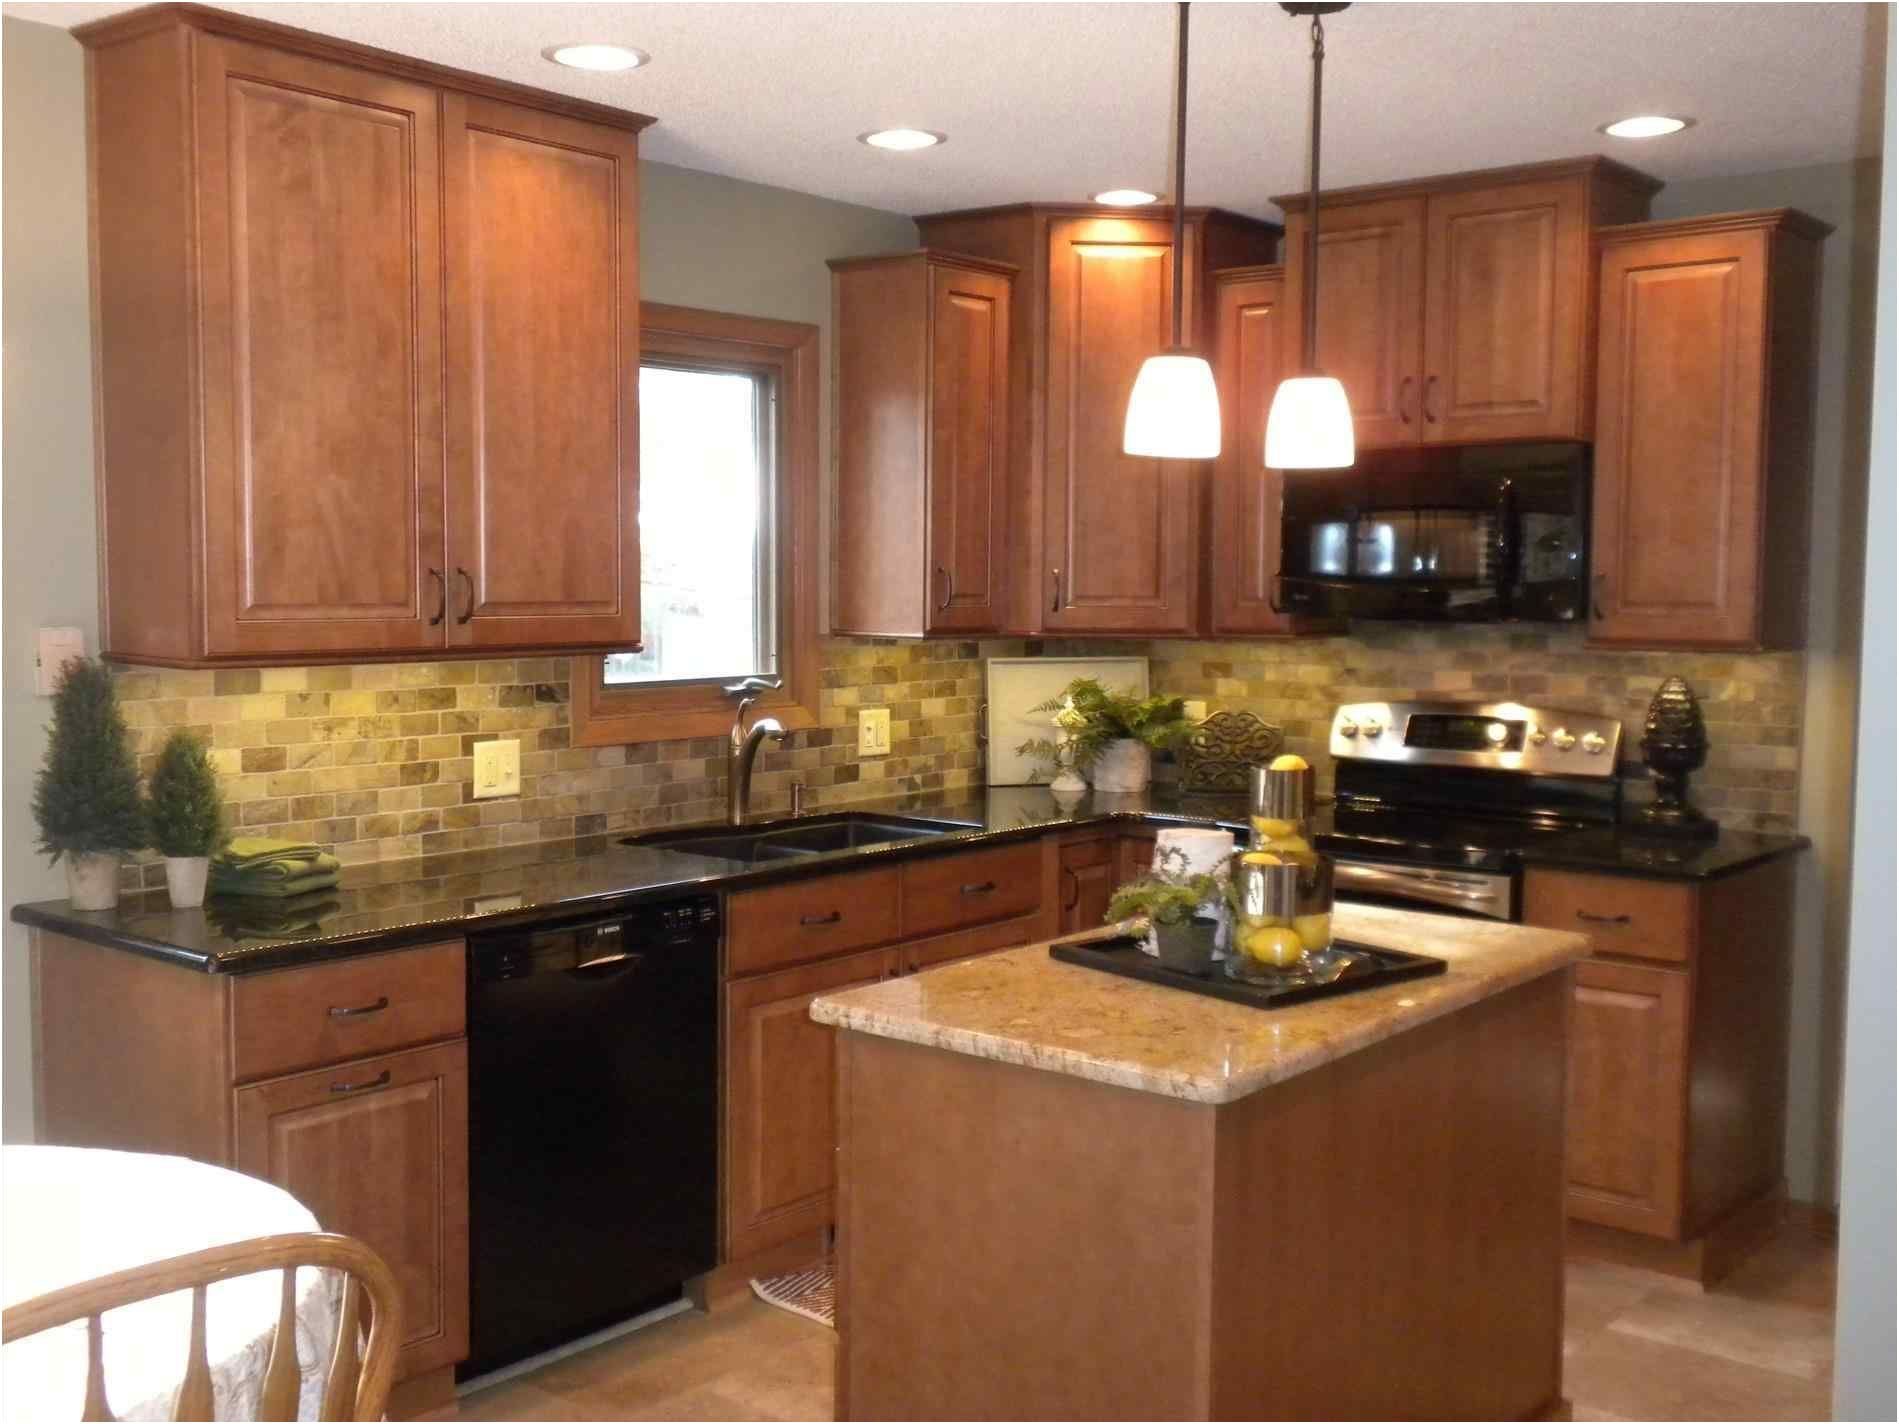 black stainless steel appliances with oak cabinets colors ...